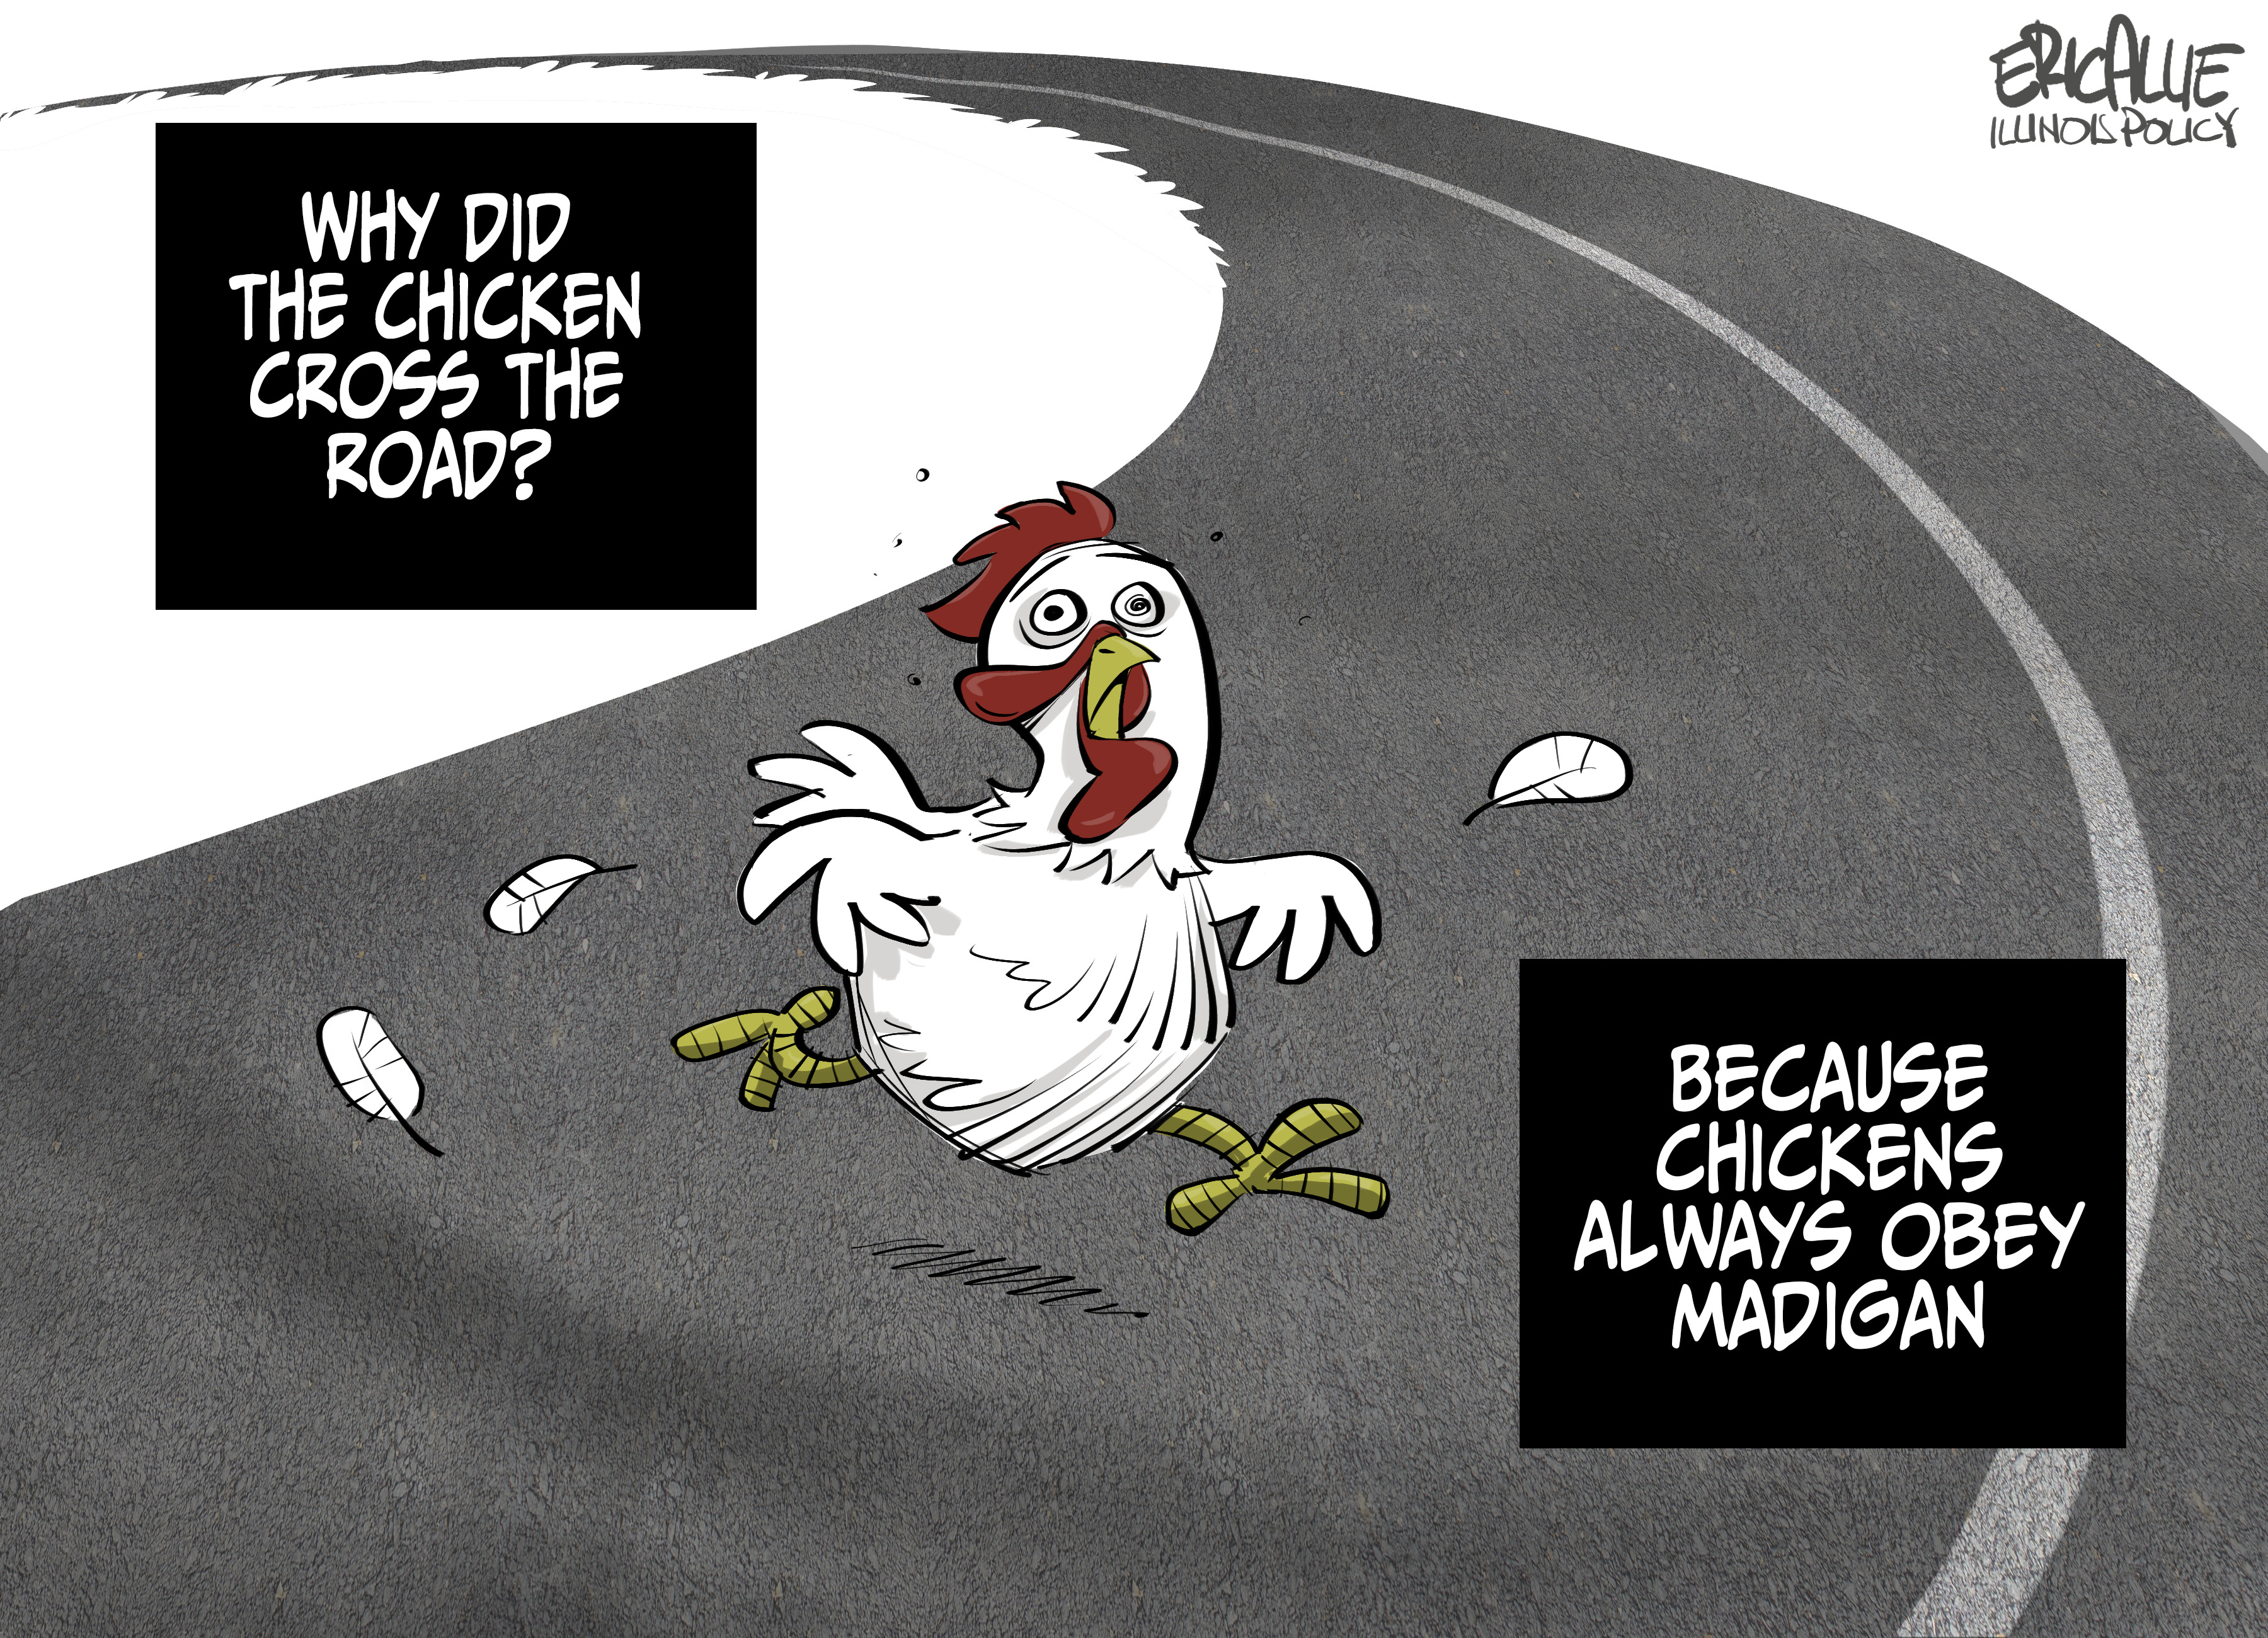 why did the chicken cross the road because mike madigan